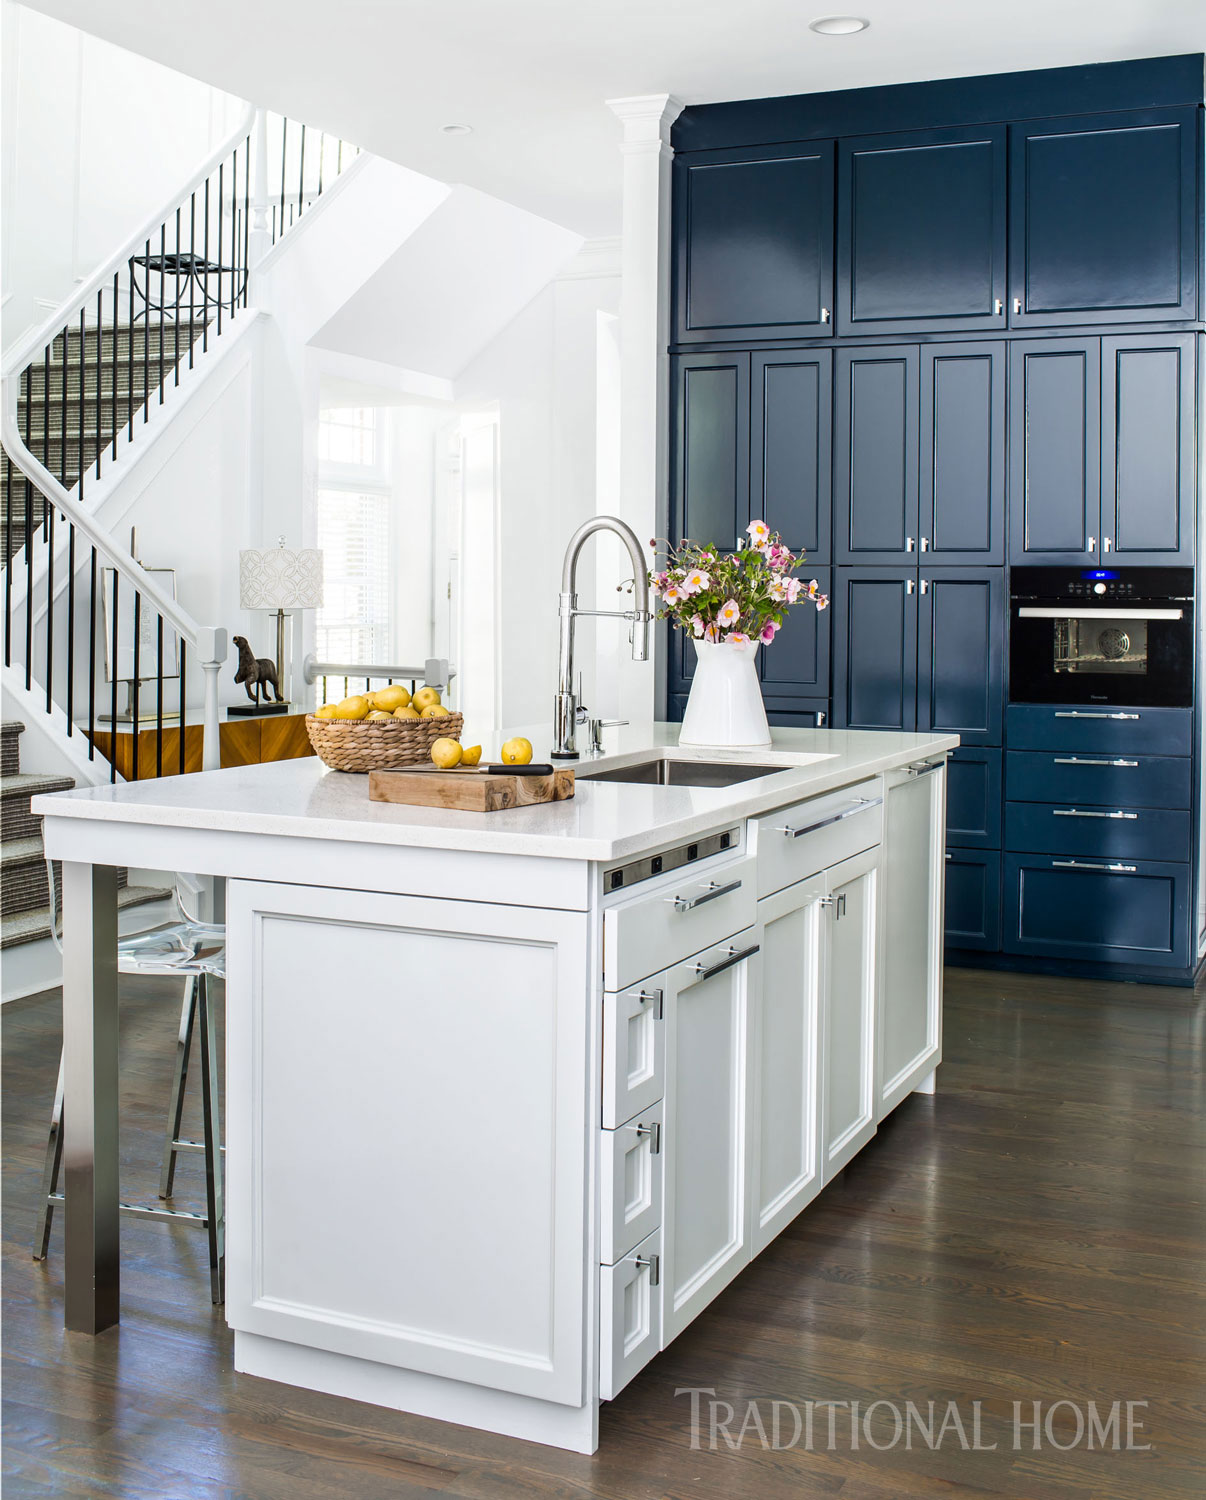 A 12 Foot Tall Wall Of Blue Cabinetry Echoes The Backsplash Color And Allows